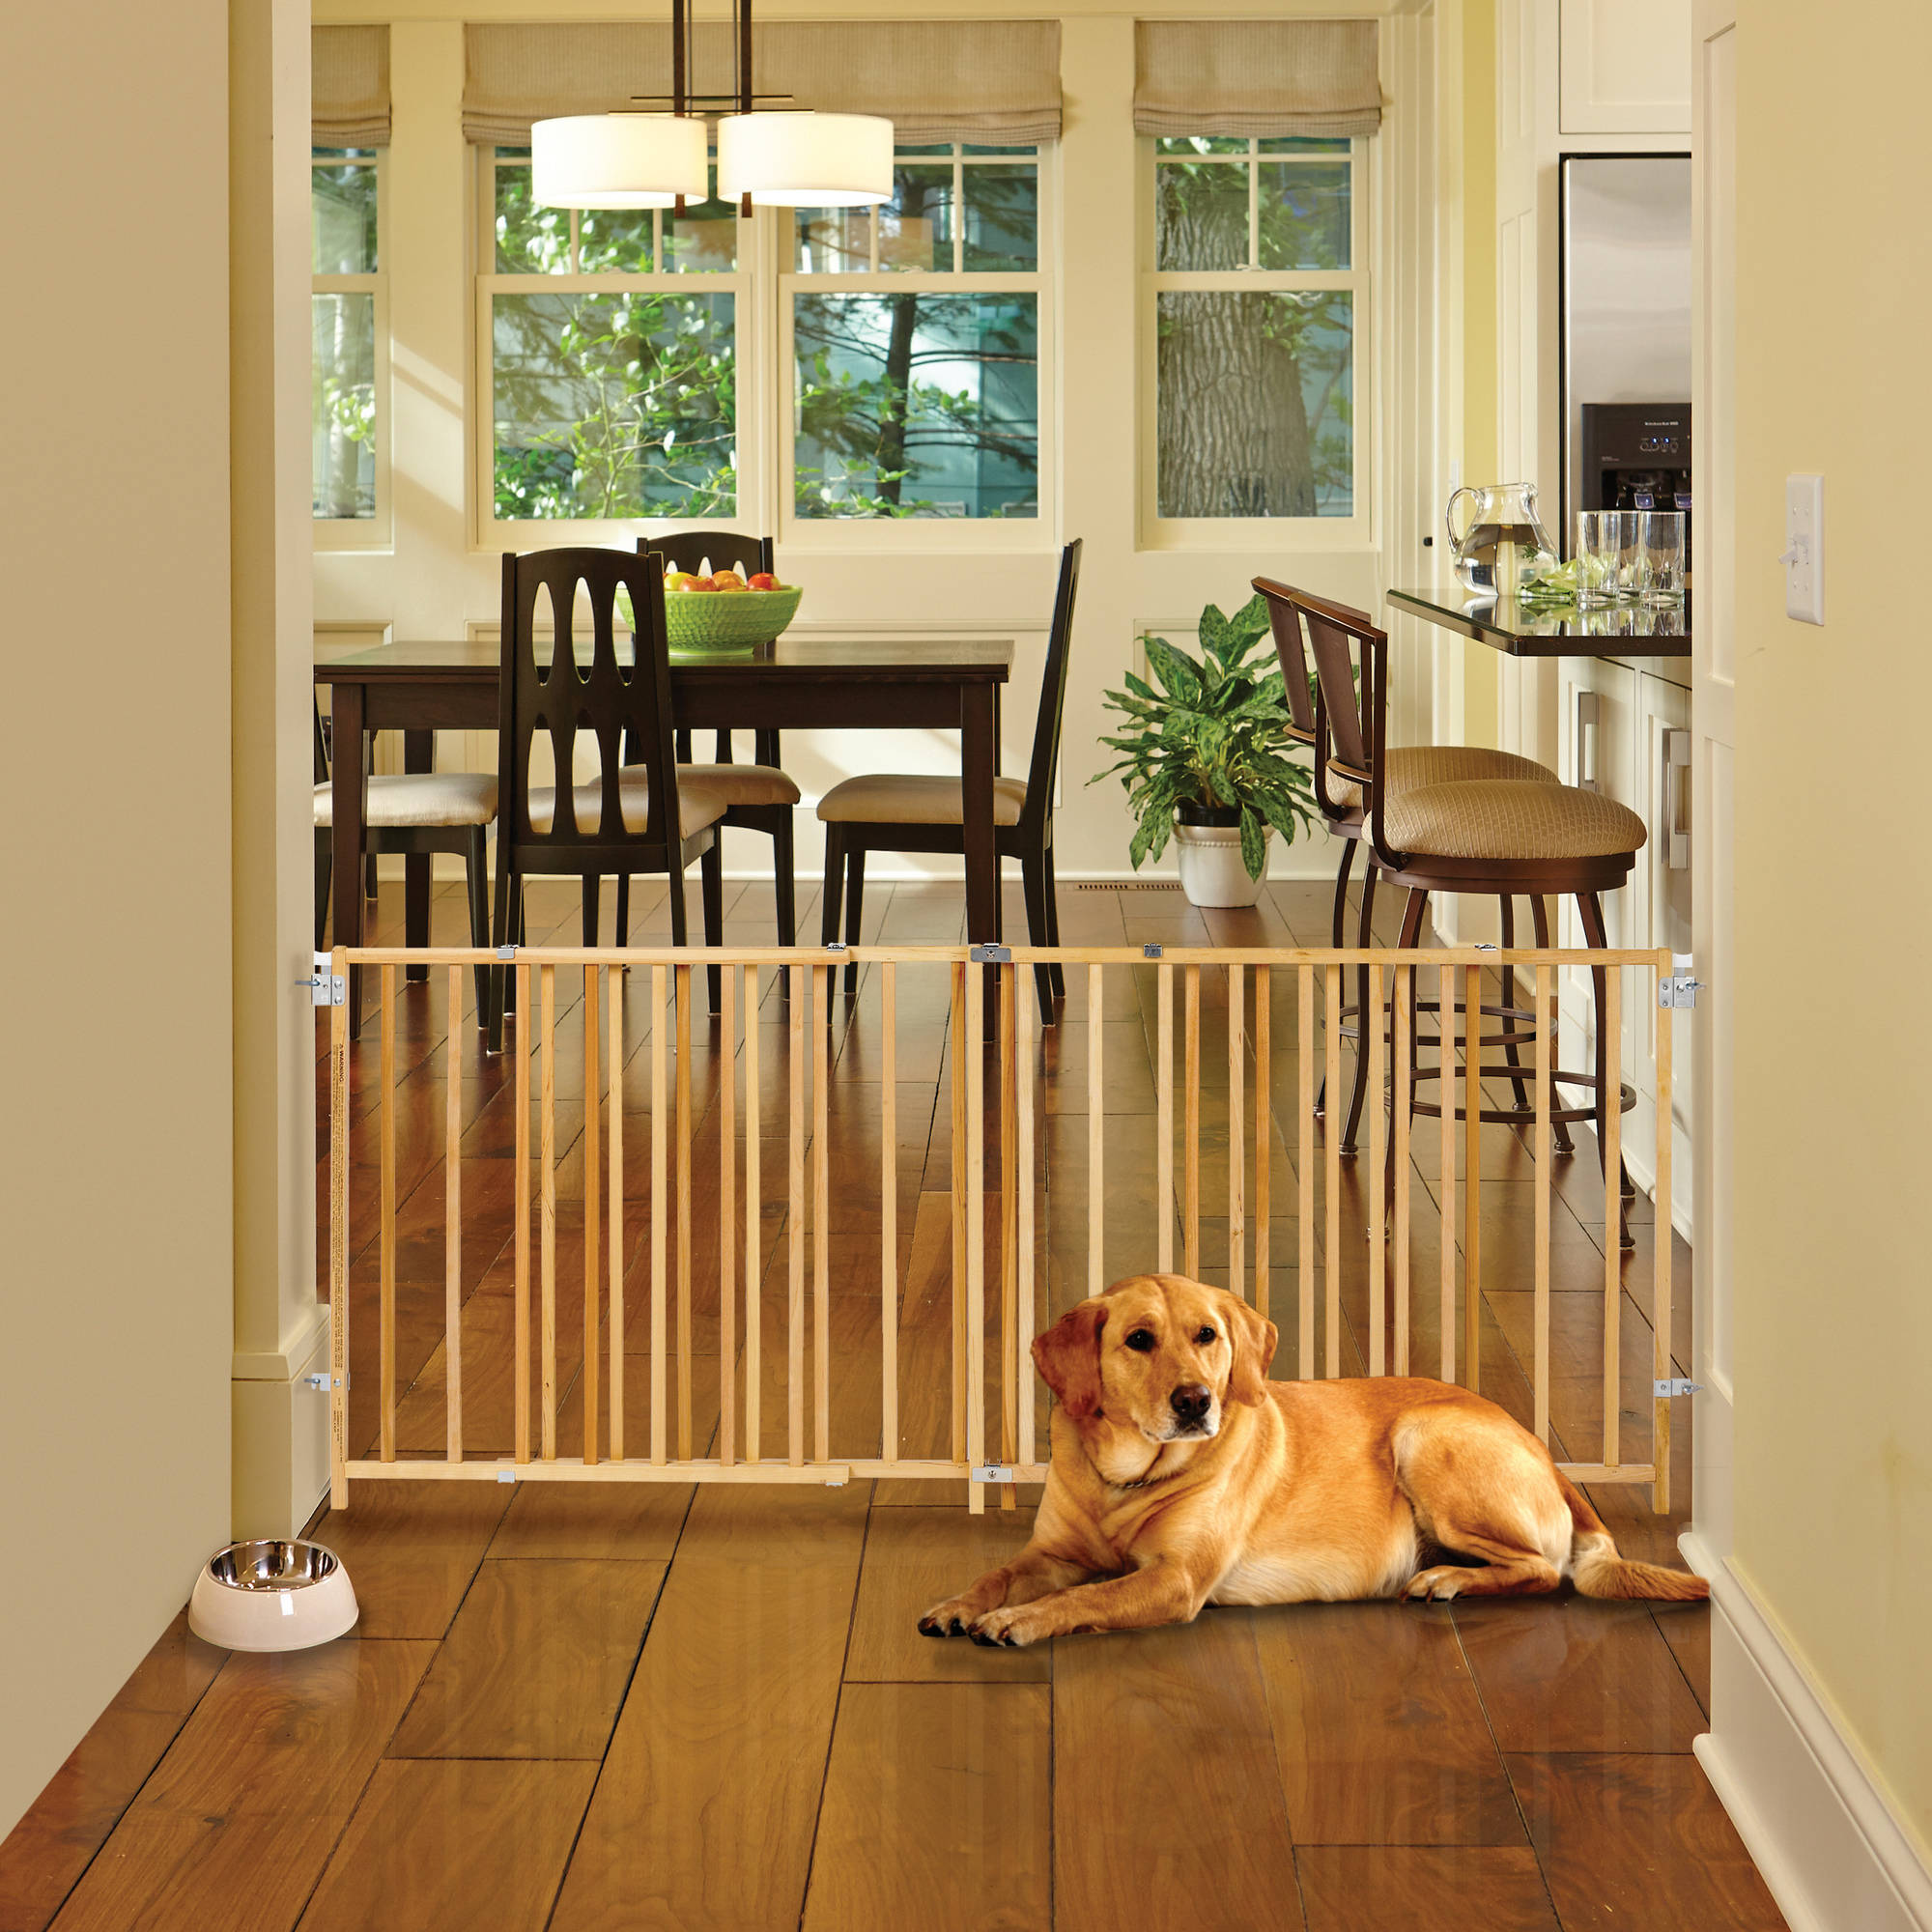 New extra wide wooden swing gate north states supergate